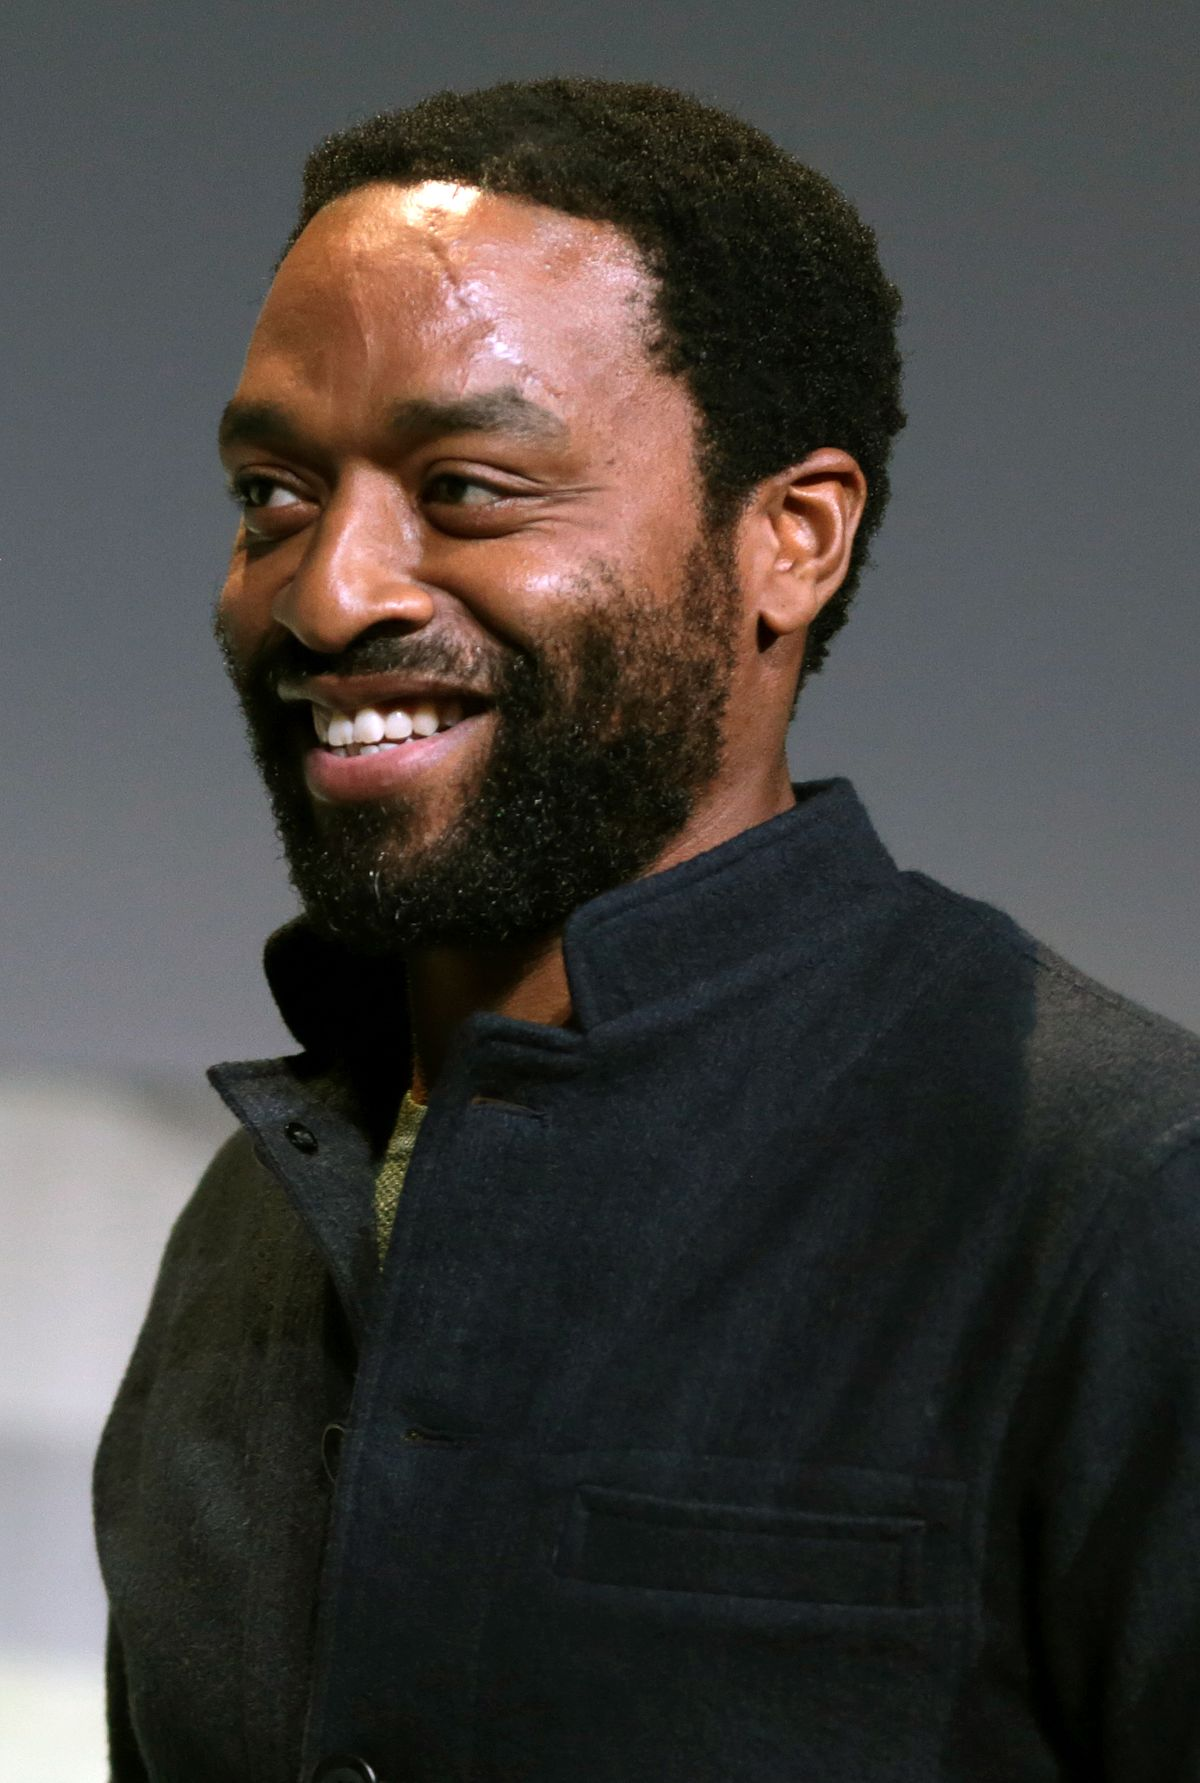 chiwetel ejiofor - photo #3